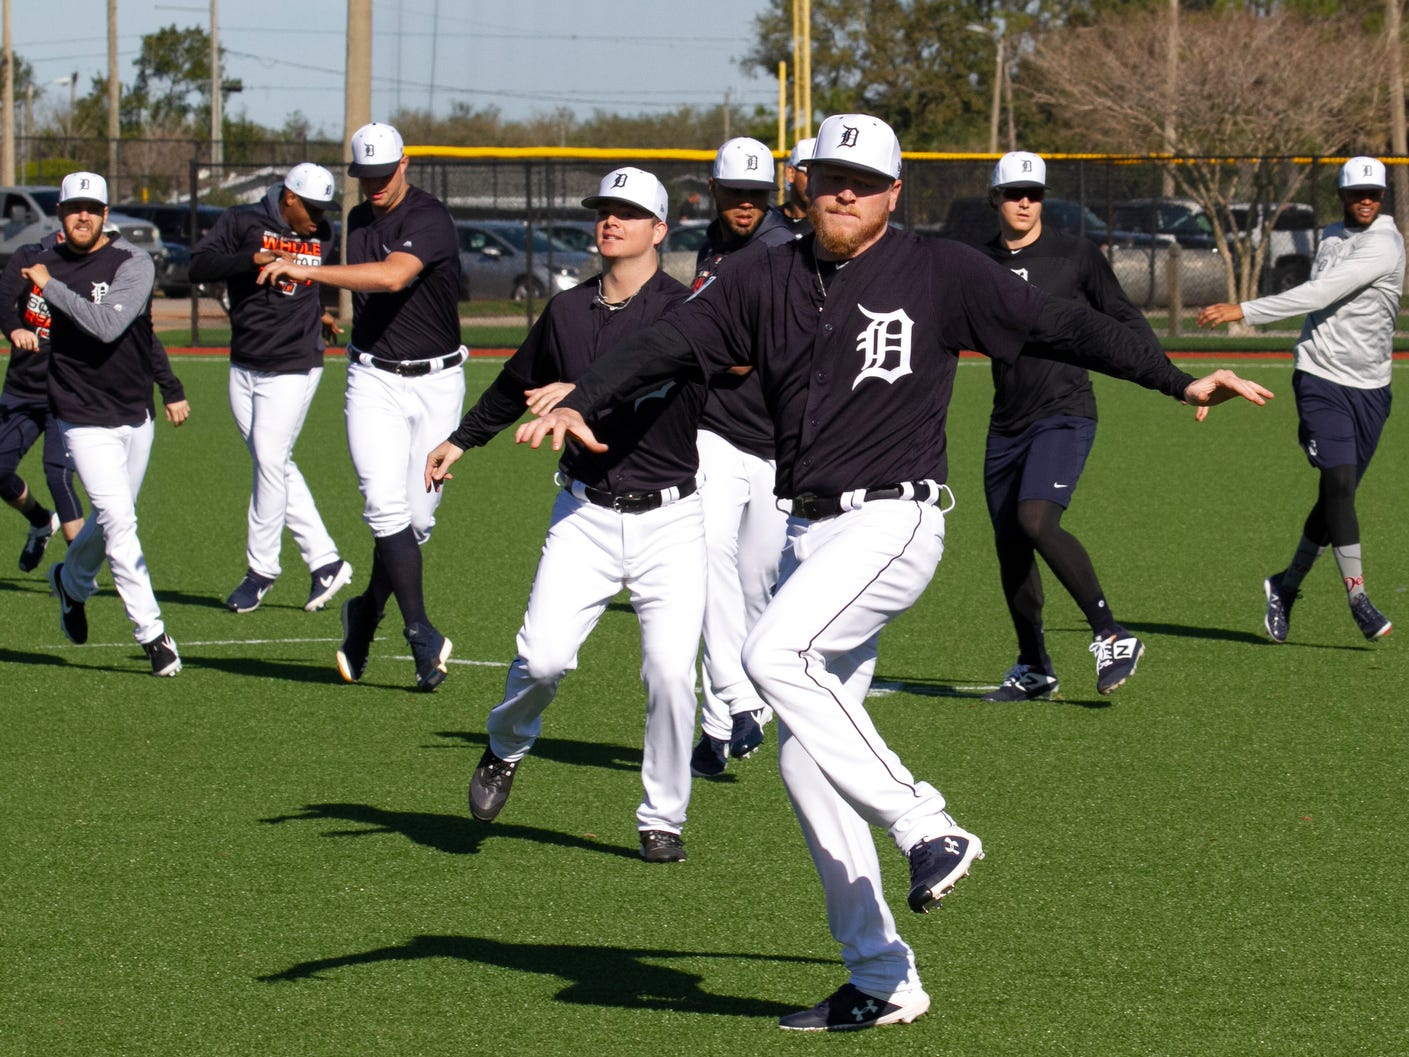 Detroit Tigers pitchers including Daniel Stumpf, center, and catchers warm up during spring training practice.